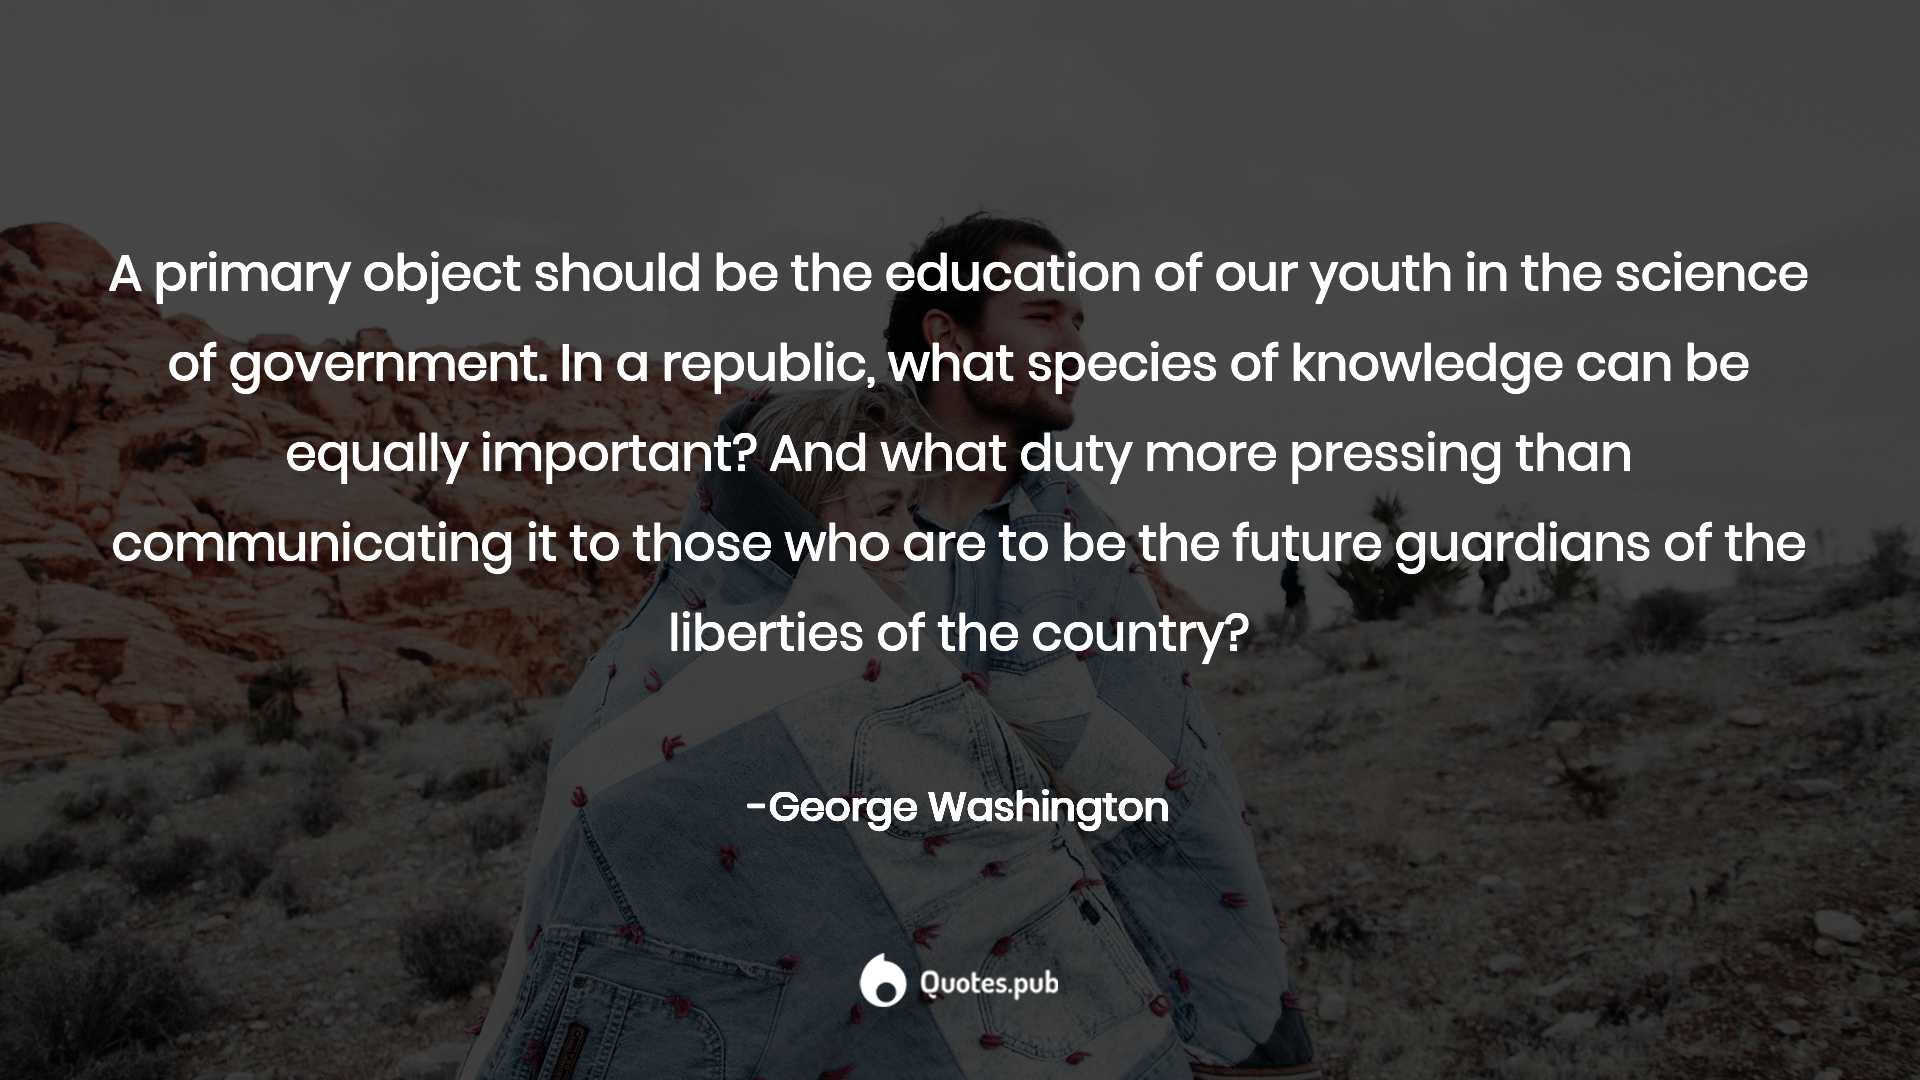 a primary object should be the edu george washington quotes pub